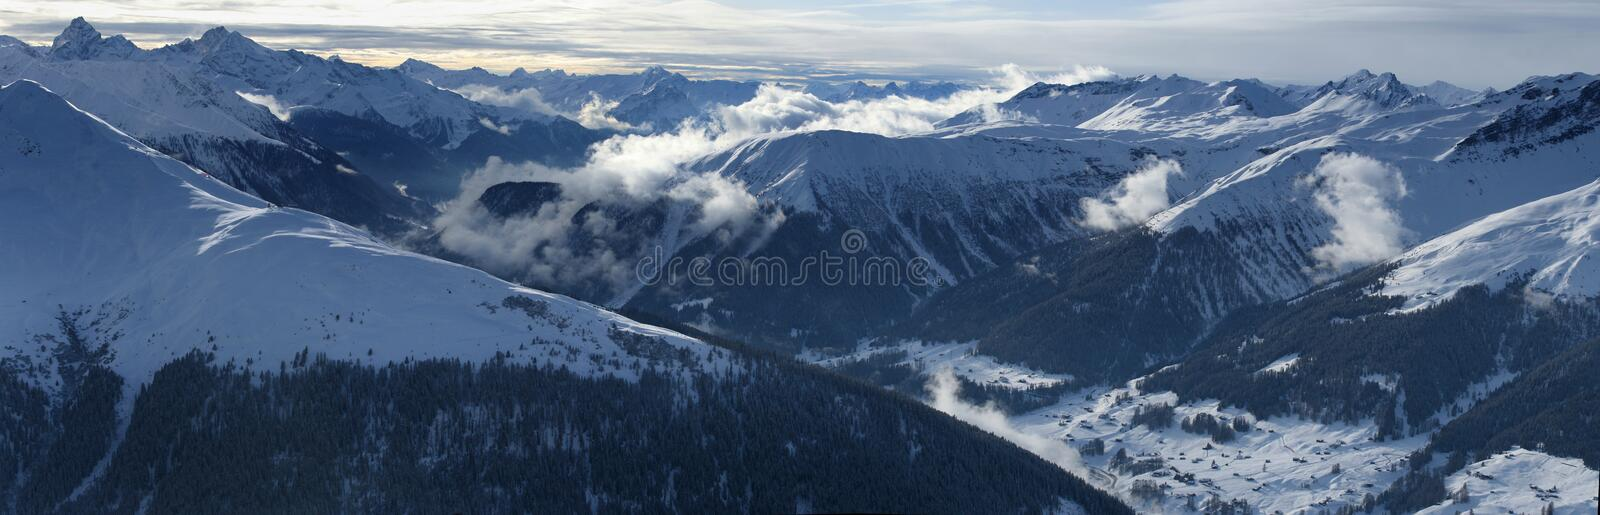 High Resolution Alpine Panorama. Very high resolution alpine panorama showing snow covered mountains and dramatic clouds royalty free stock photo